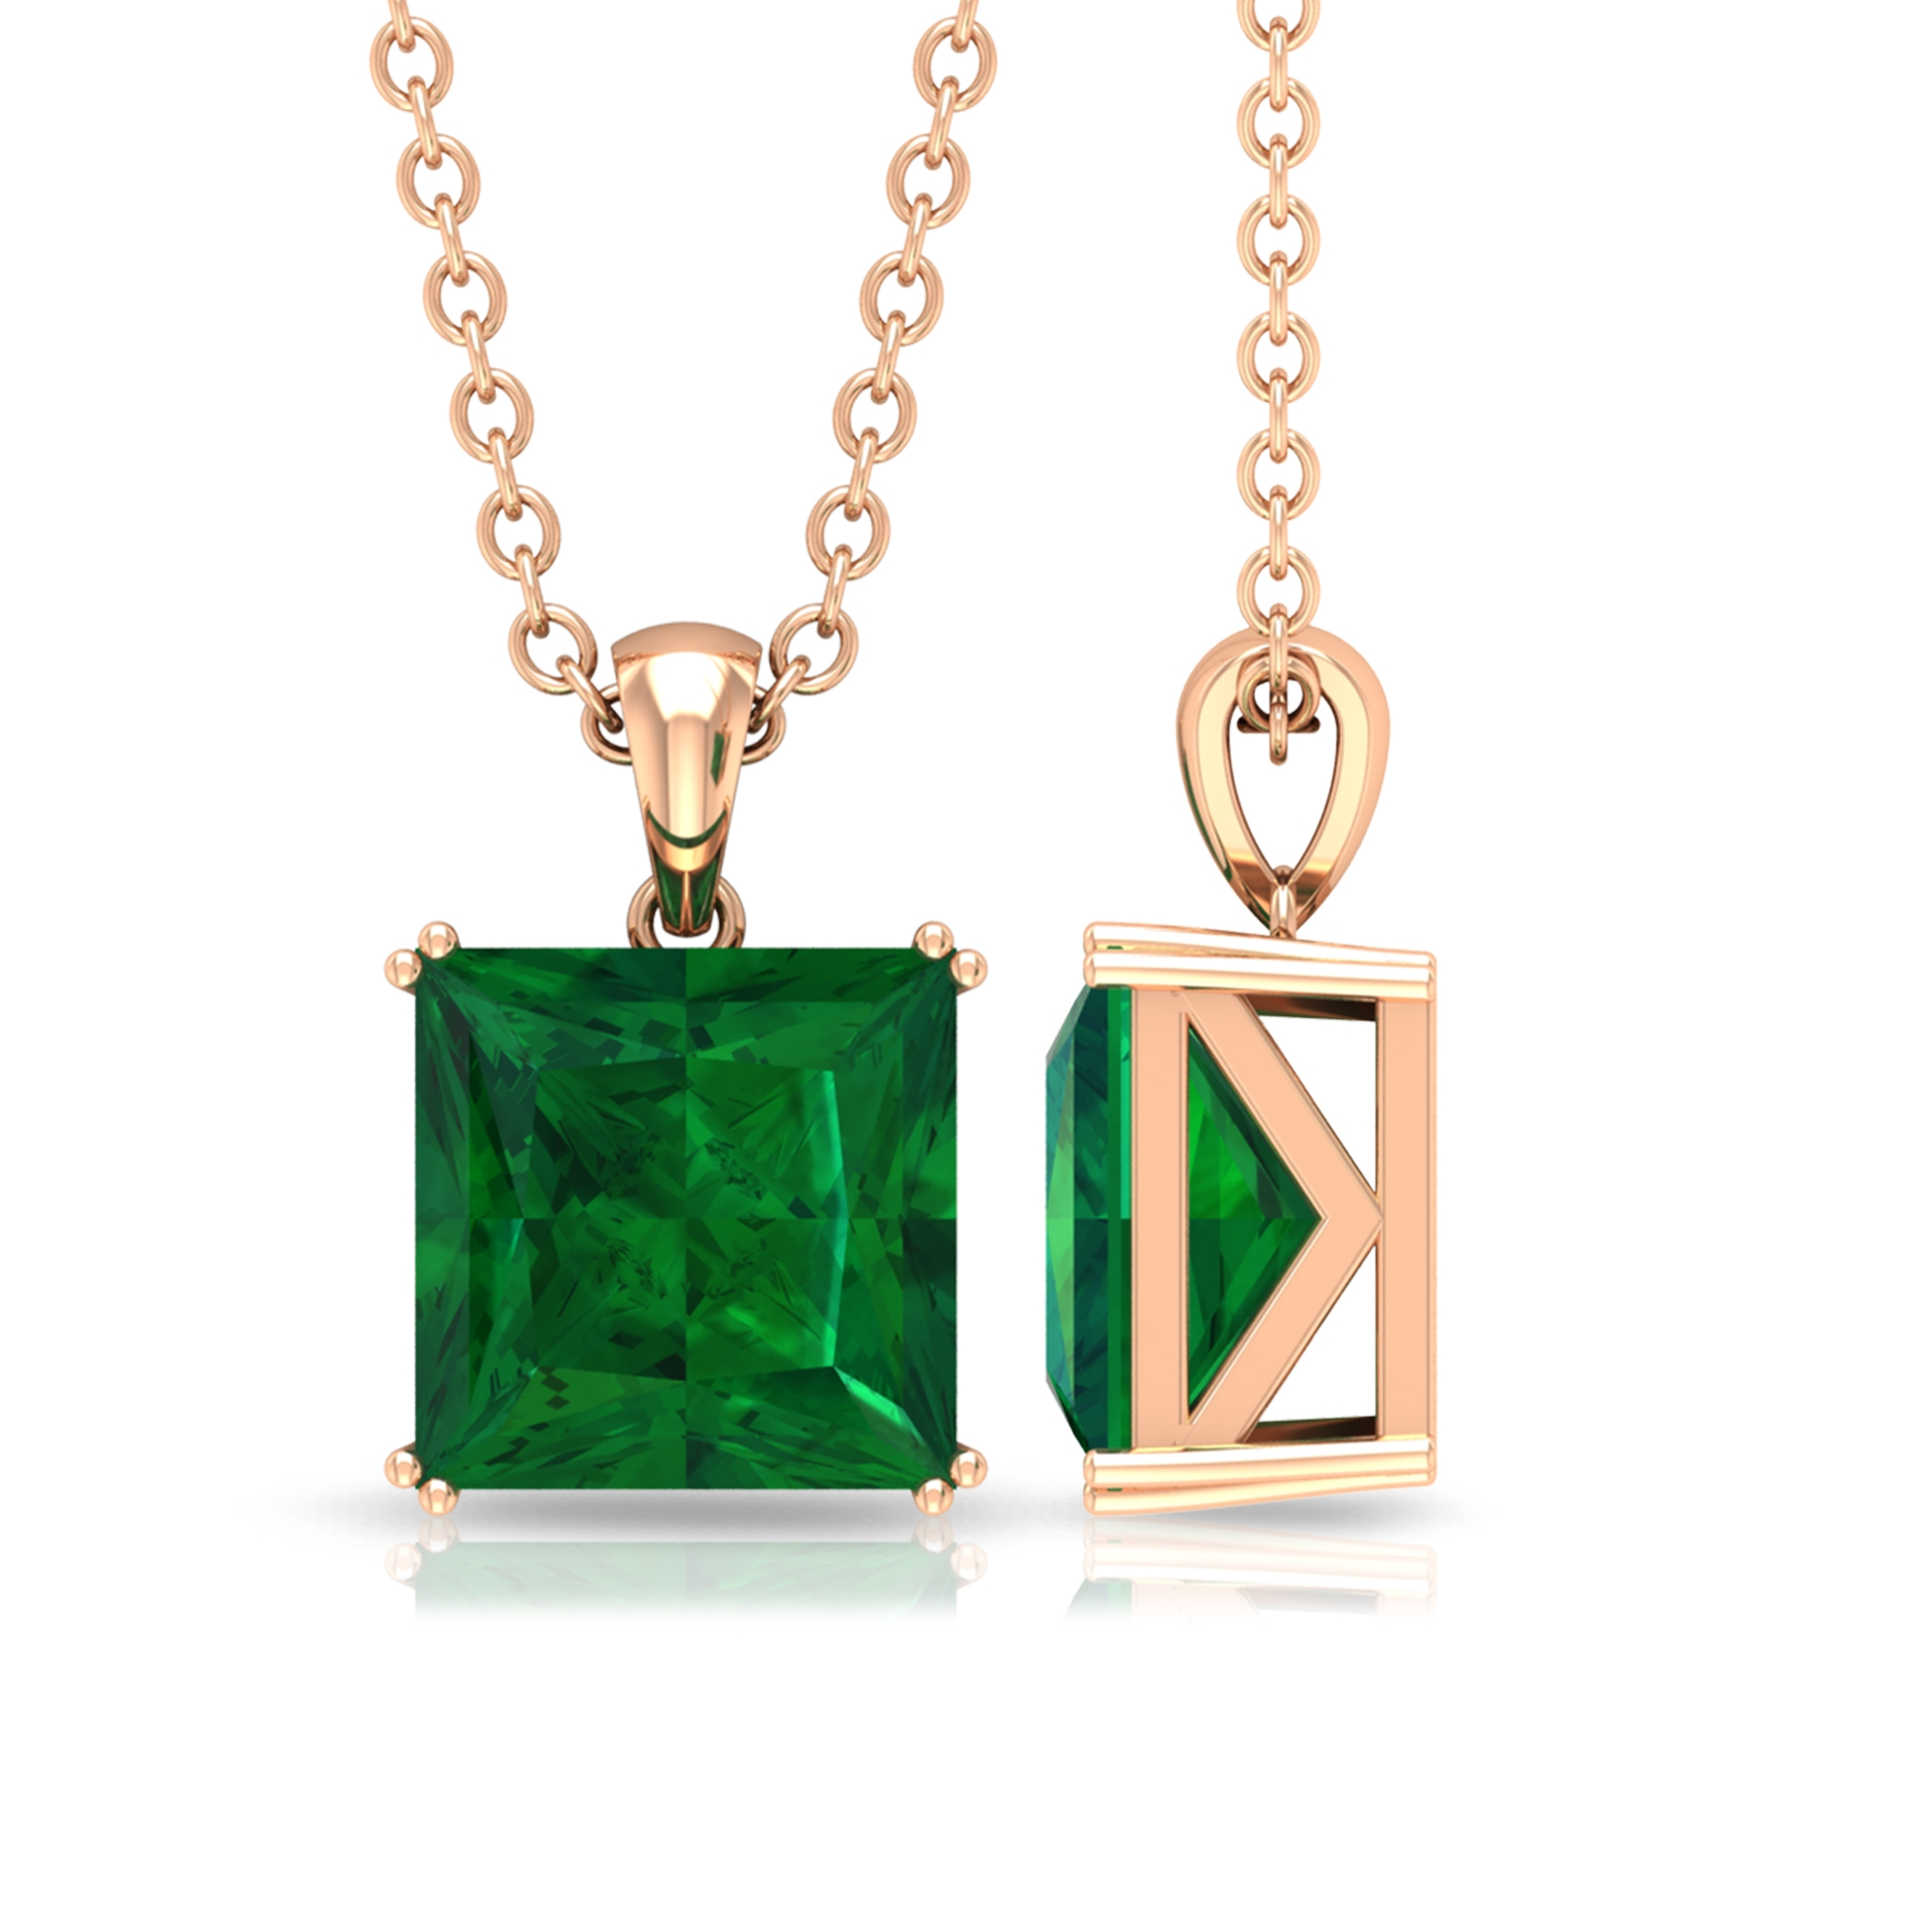 7 MM Princess Cut Emerald Solitaire Pendant in Double Prong Setting